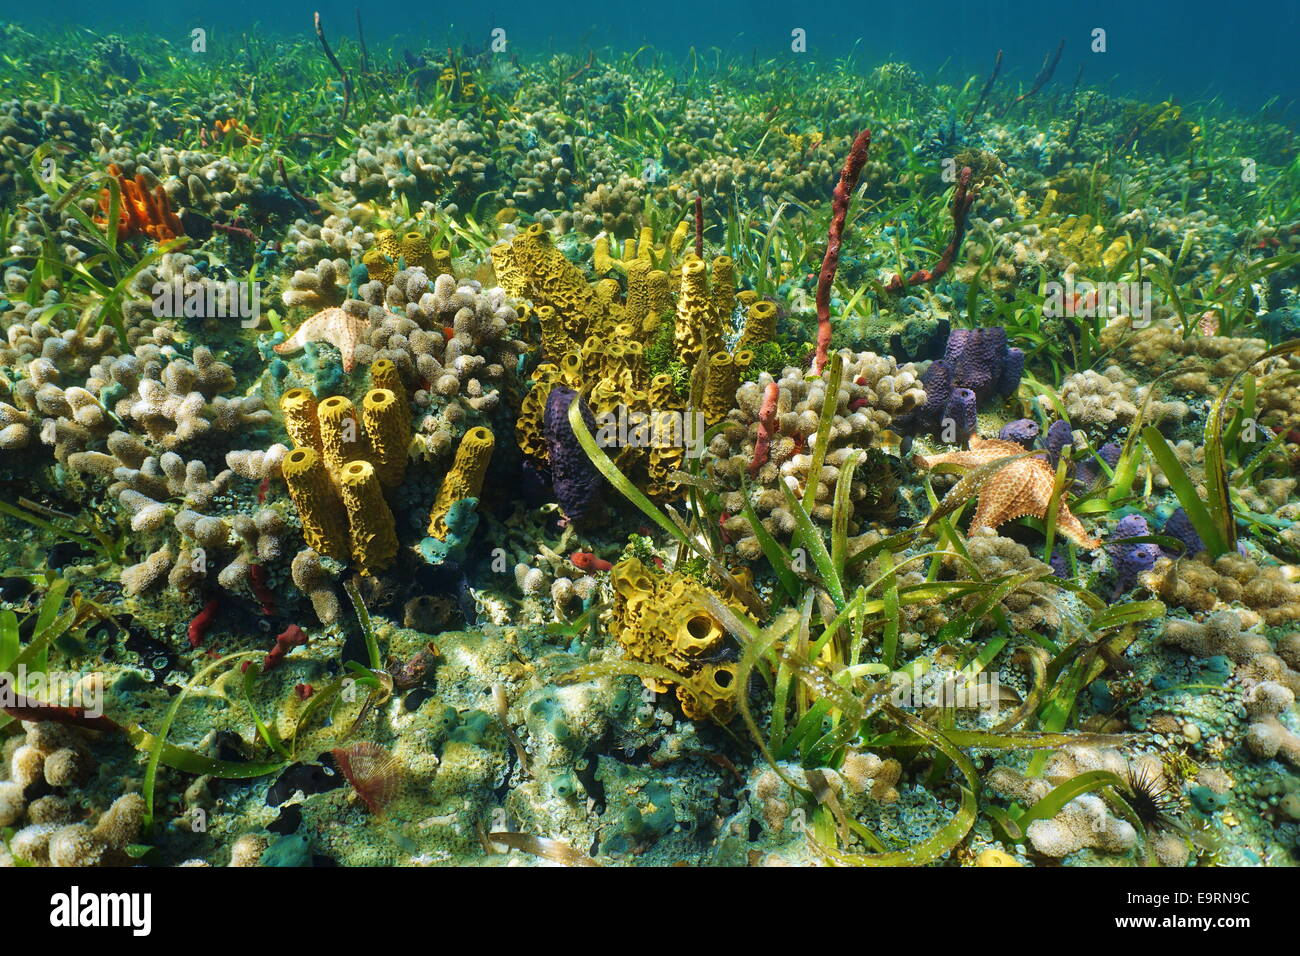 Colorful underwater creatures on the seafloor with sponges,coral and starfish, Caribbean sea - Stock Image